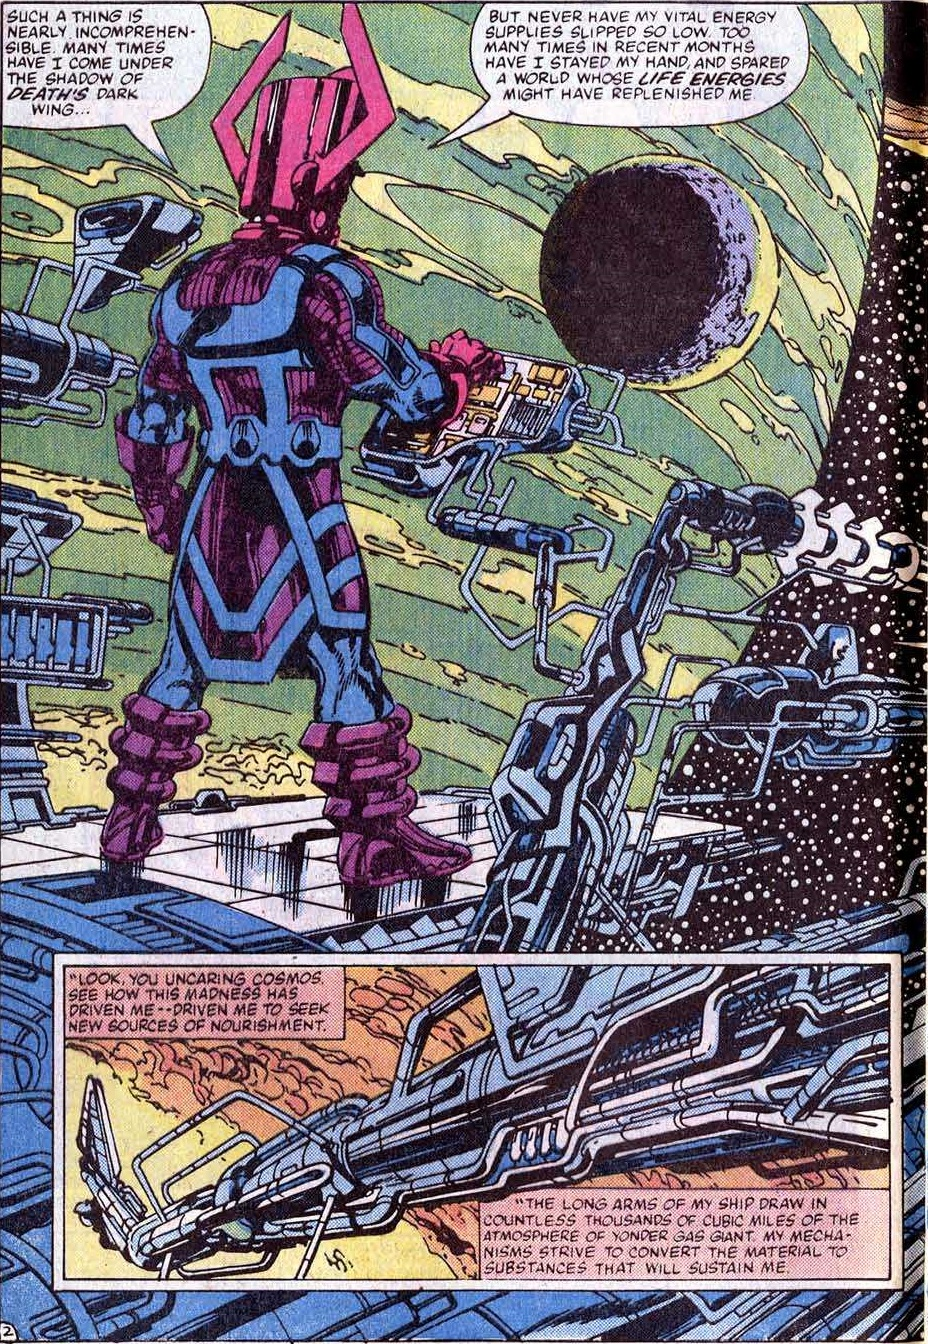 Galactus has a conversation with Death